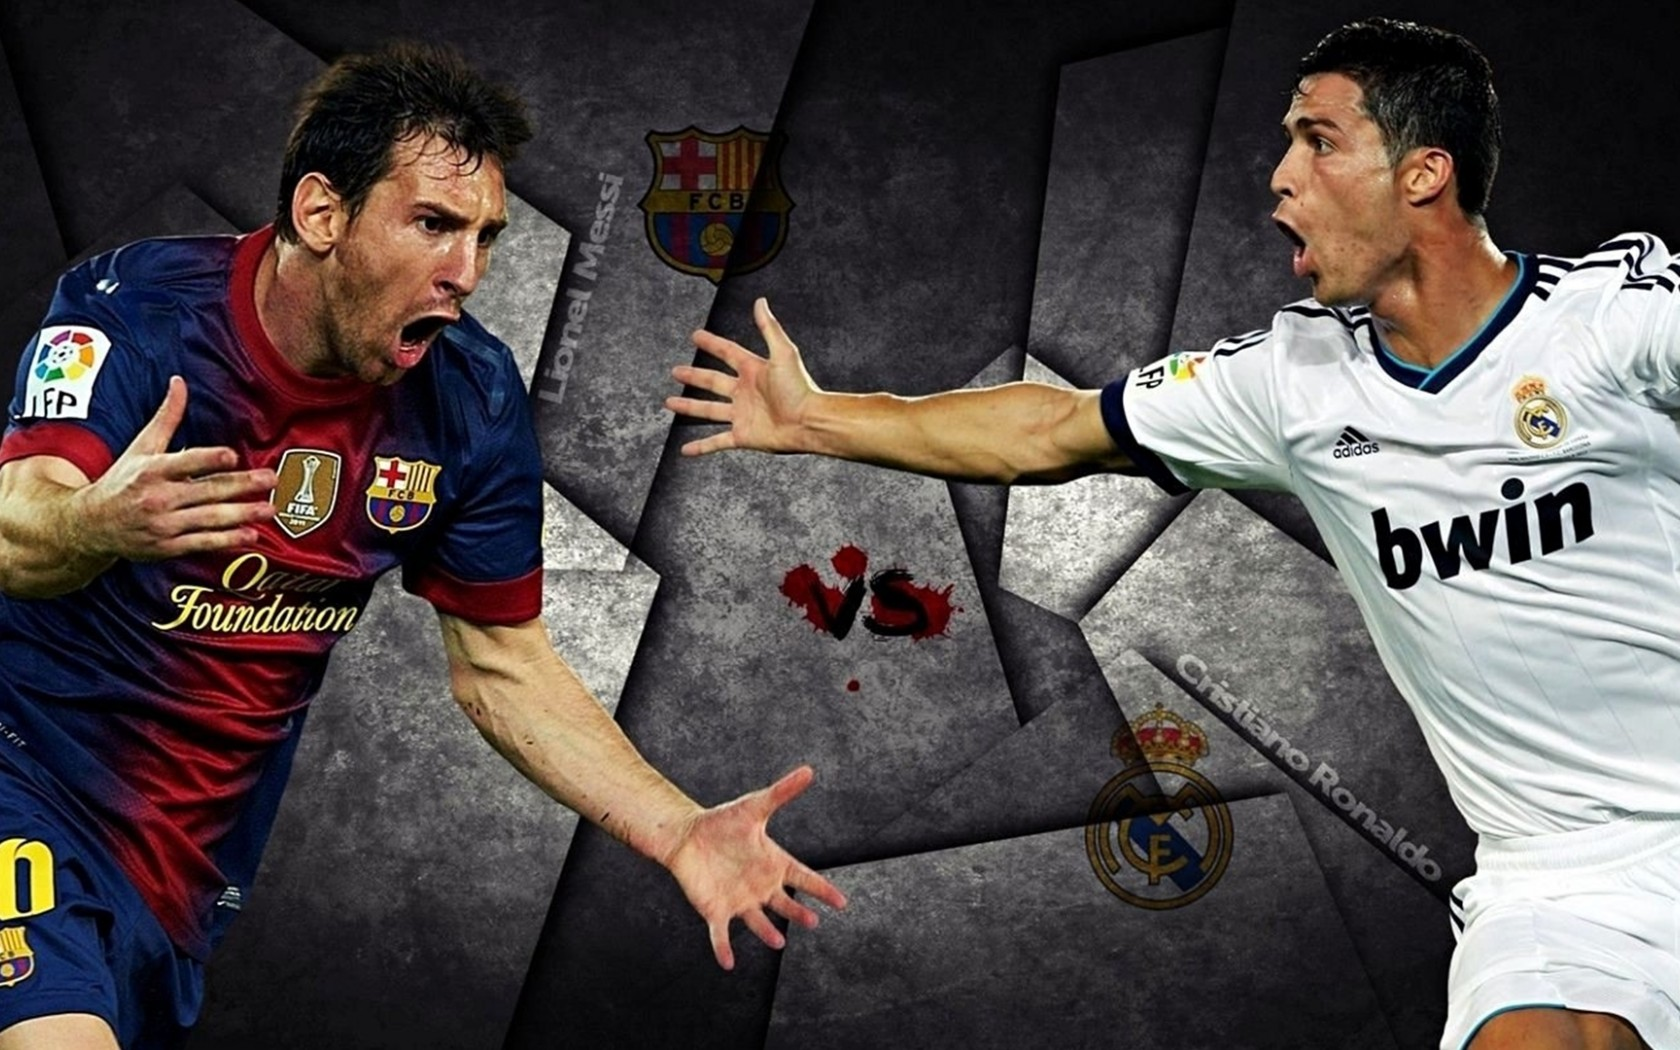 Messi and Ronaldo High Definition Wallpaper   Football HD Wallpapers 1680x1050